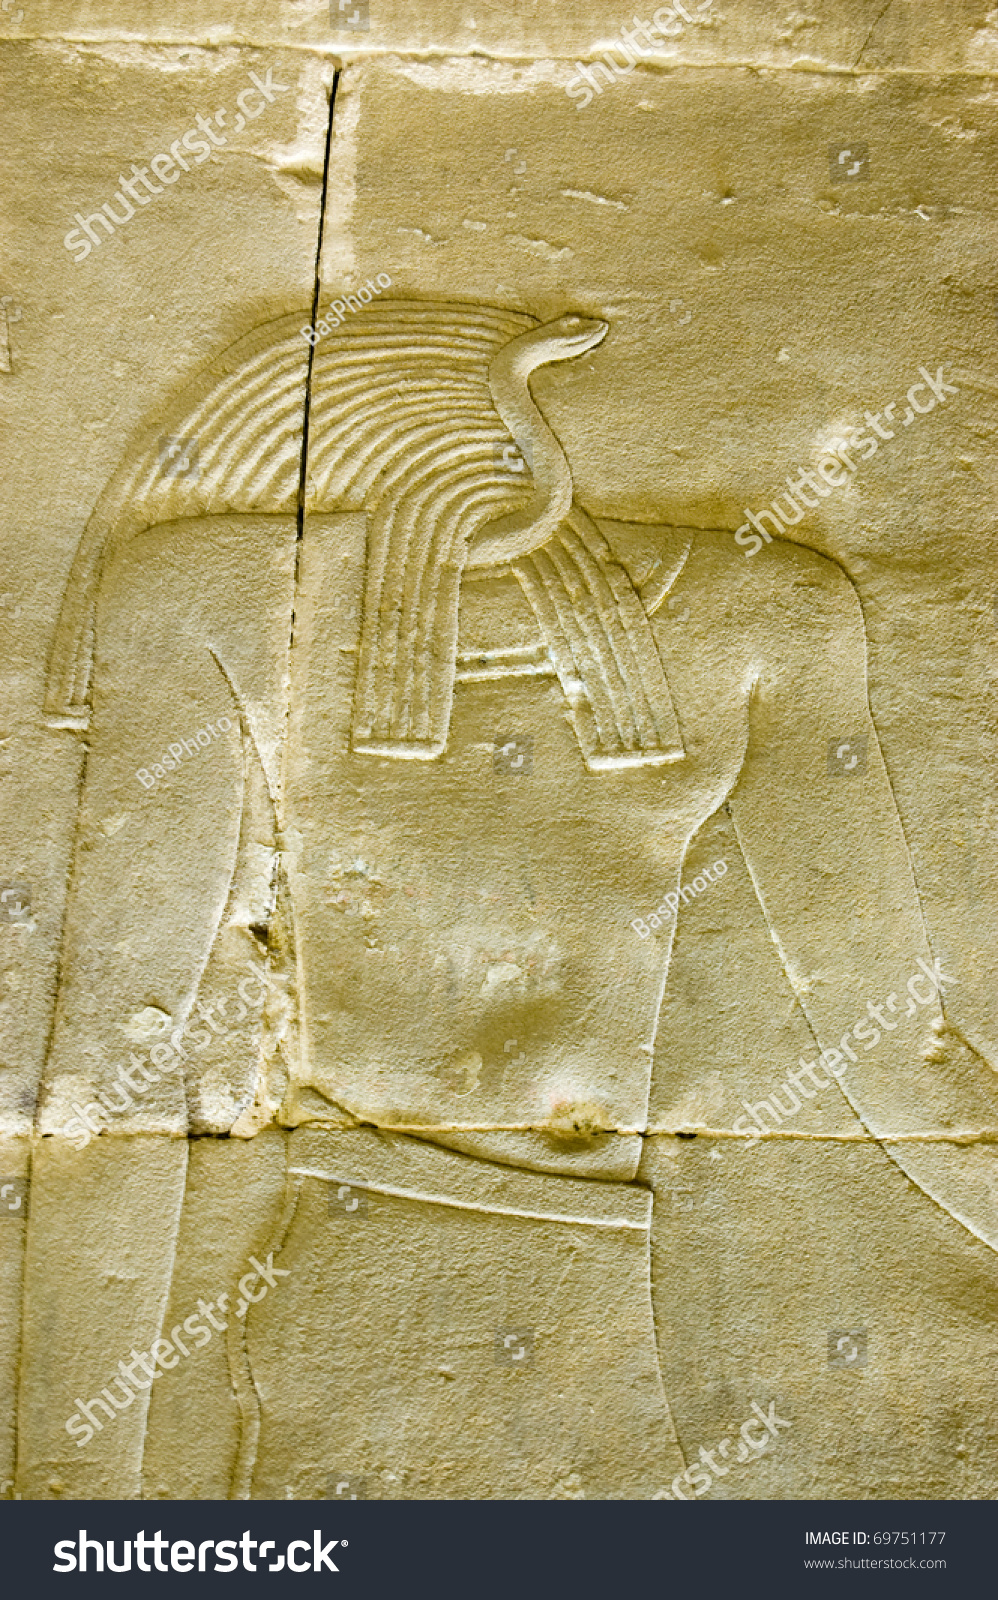 ancient egyptian stone carving of the snake headed god